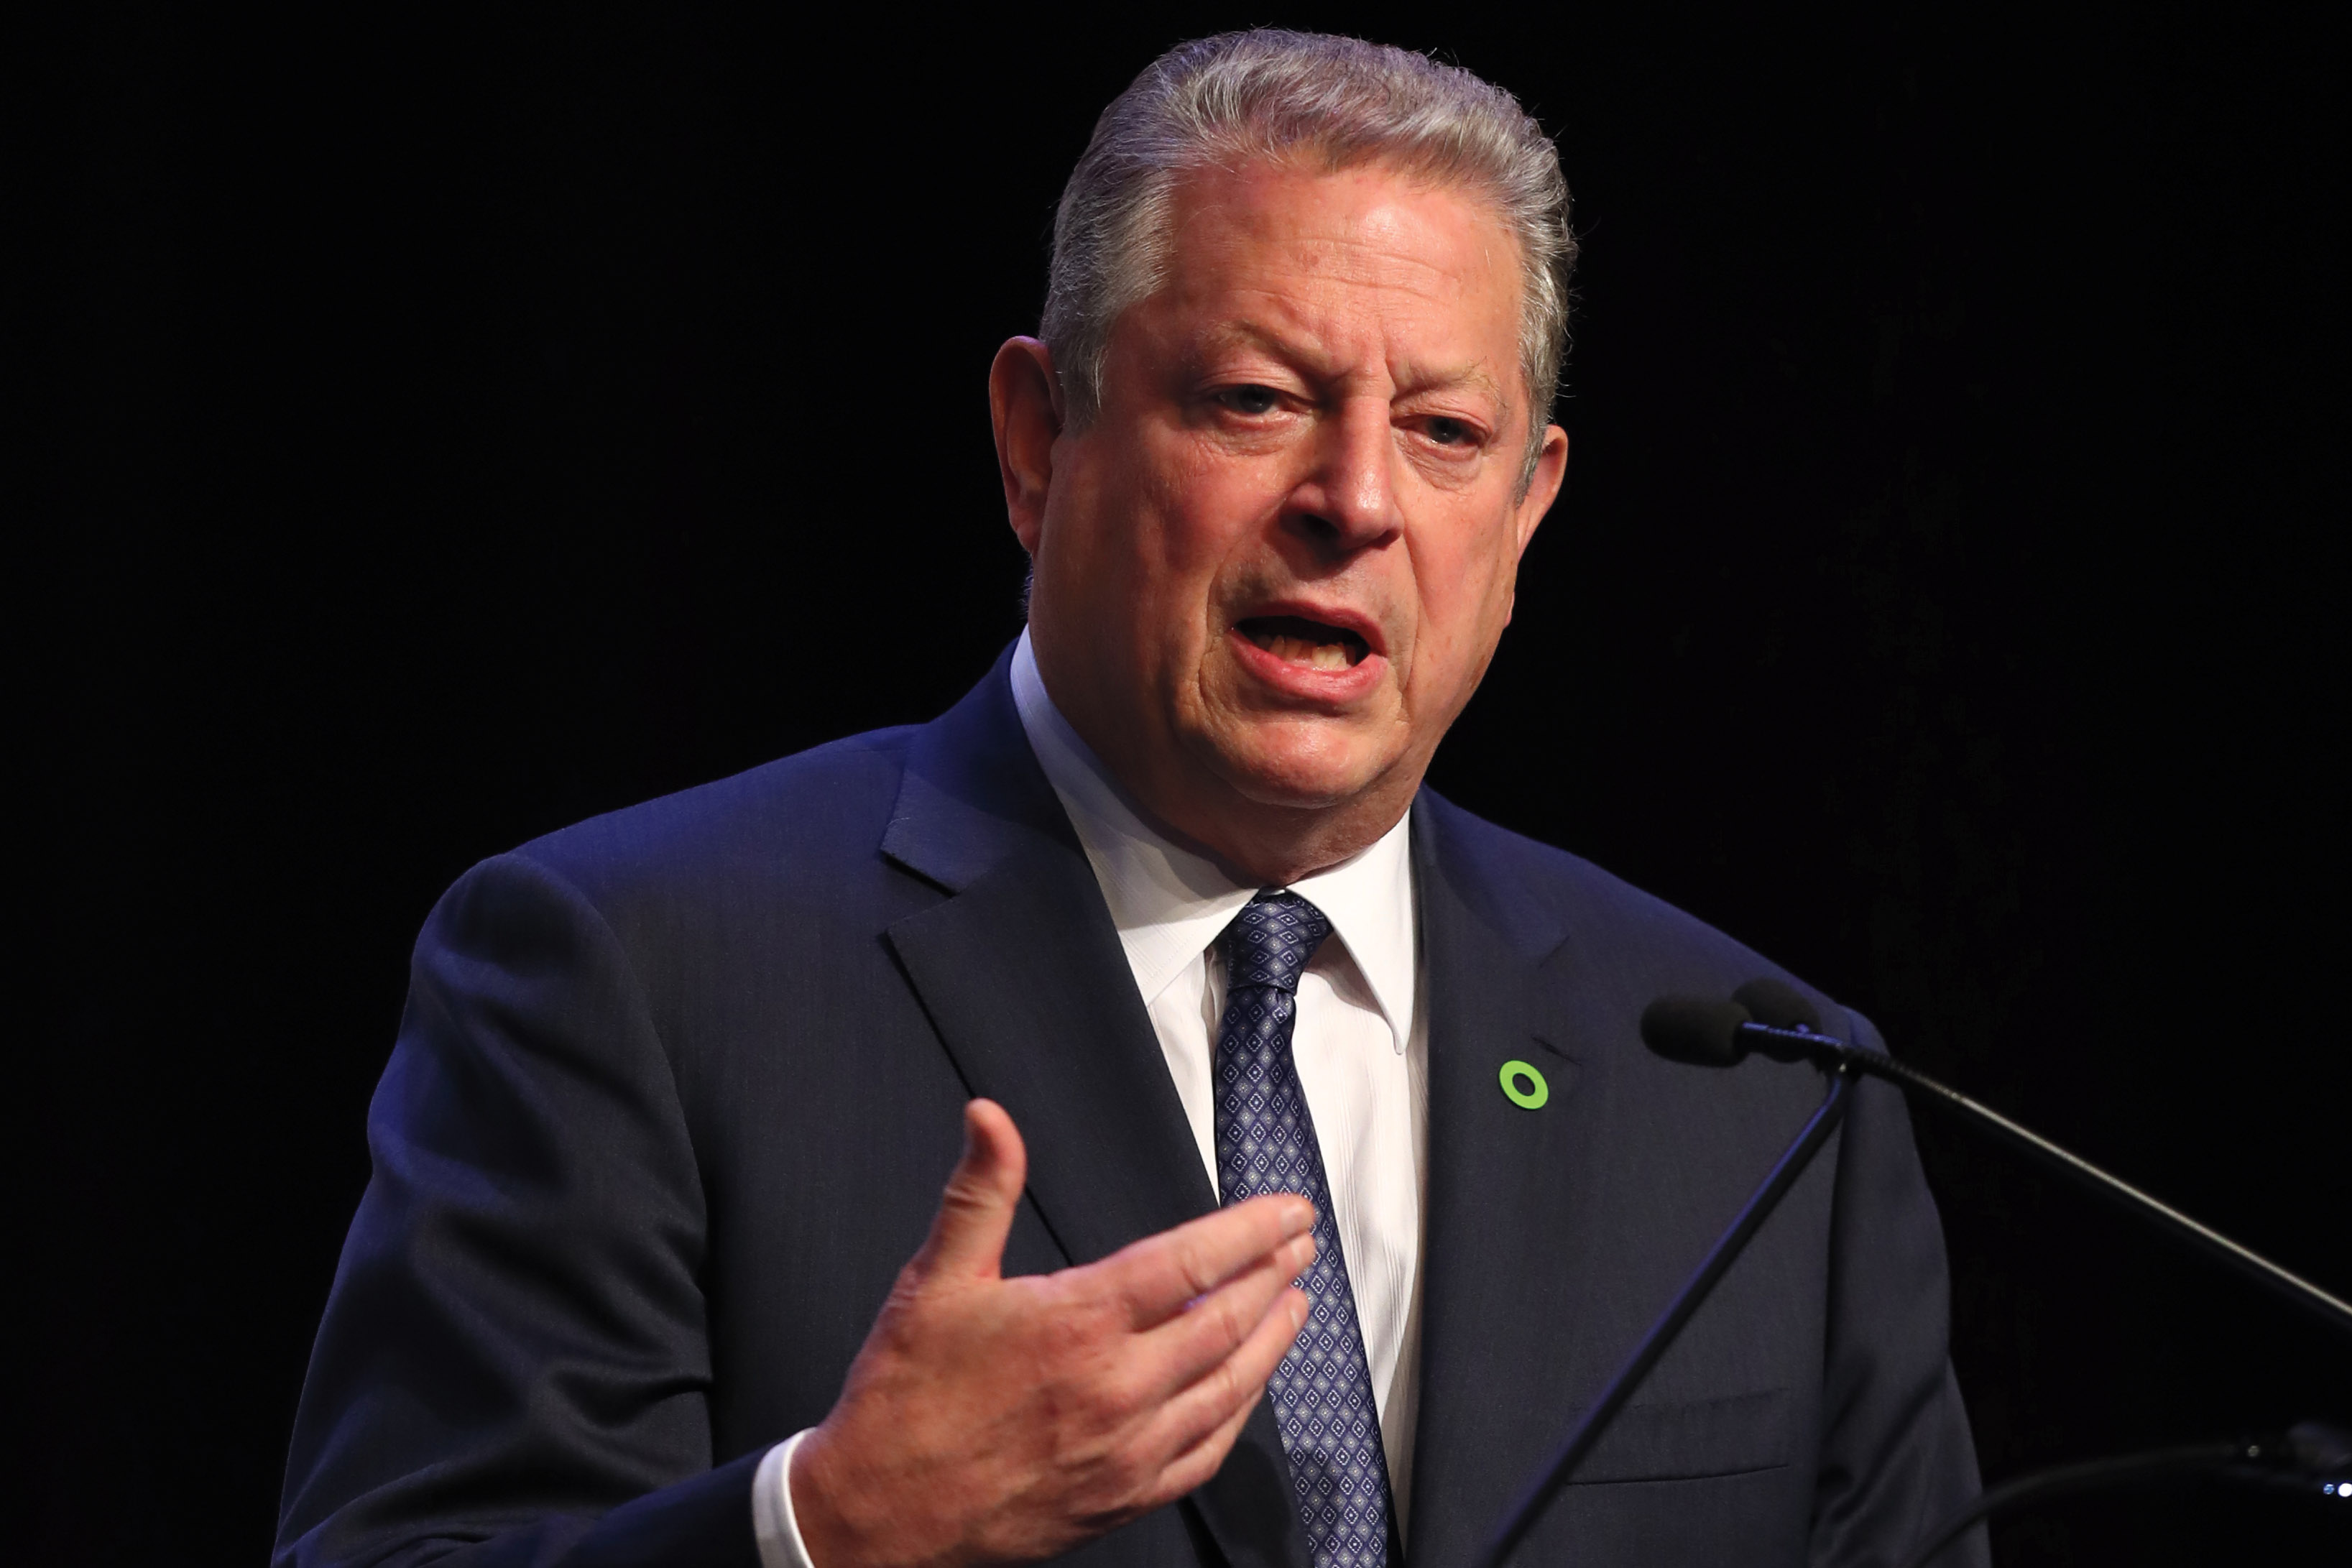 Al Gore on Climate Change and the Wine Industry